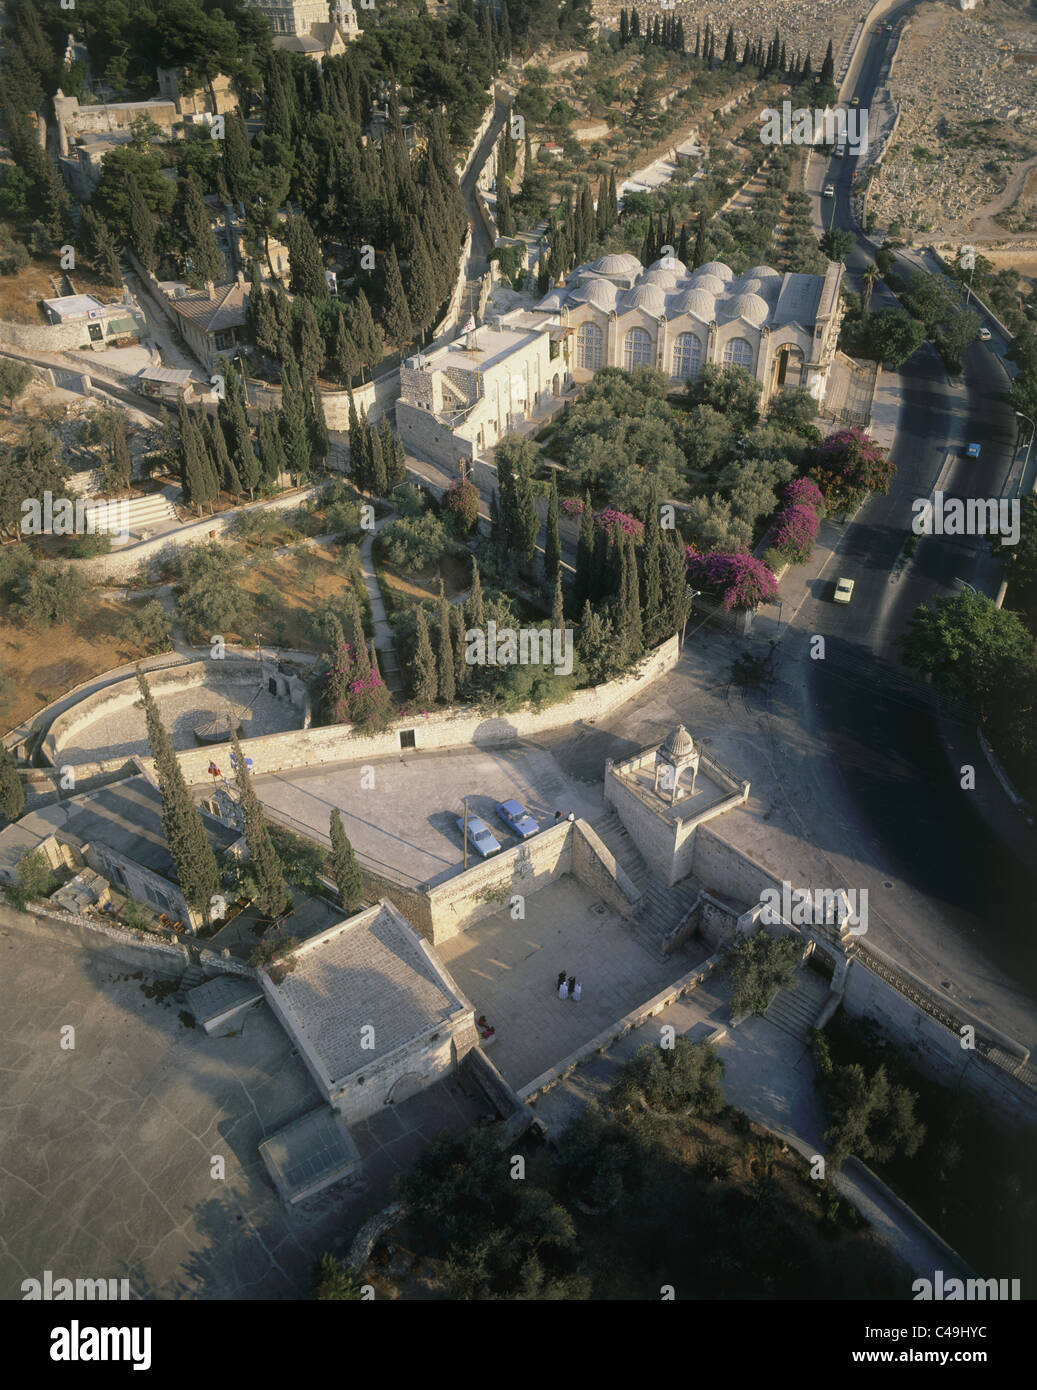 Aerial photograph of Mary's tomb and the church of Assumption in eastern Jerusalem - Stock Image